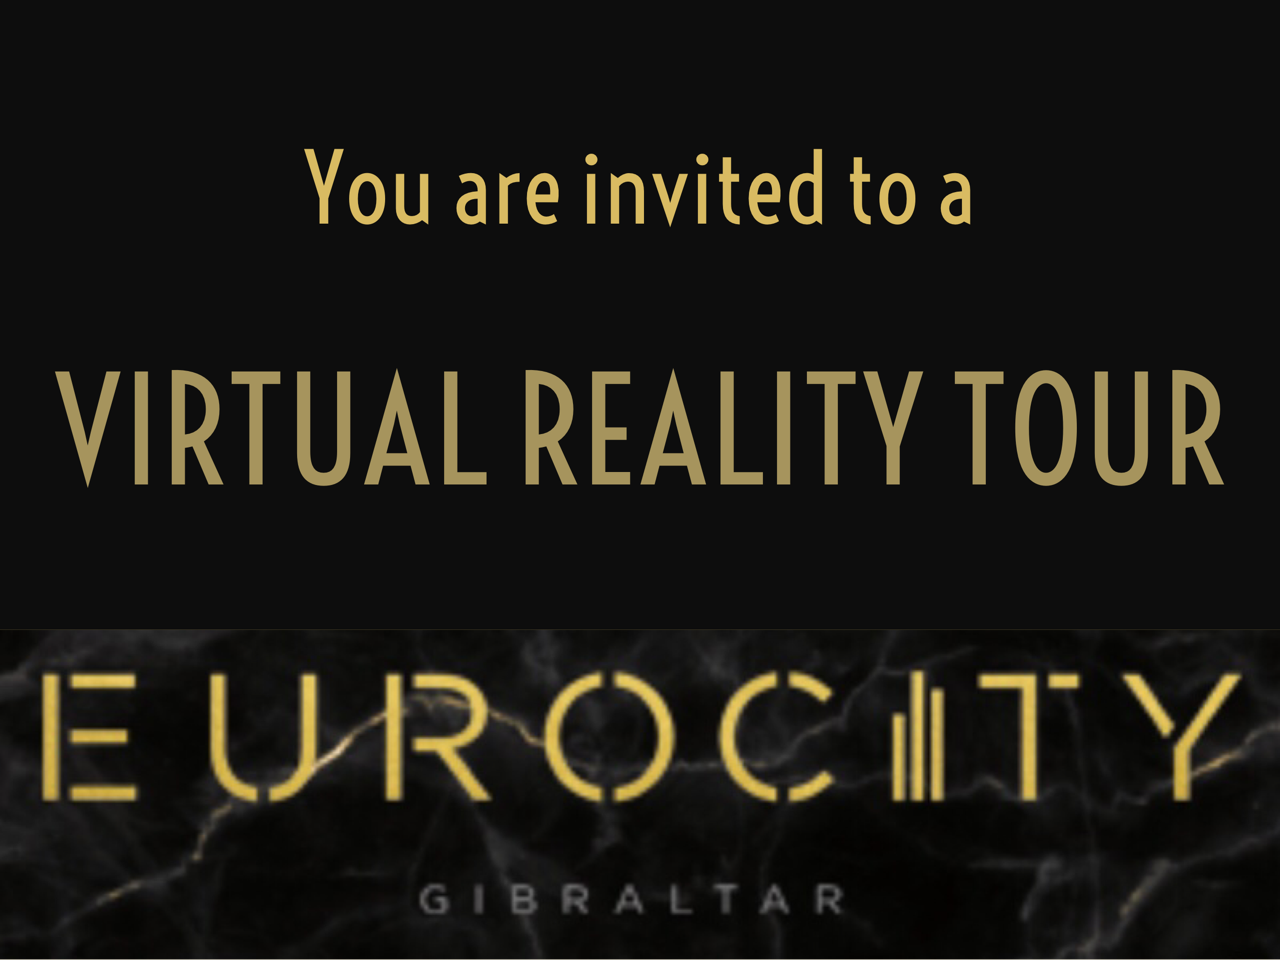 EuroCity:  Virtual Reality Tour Now Open Image